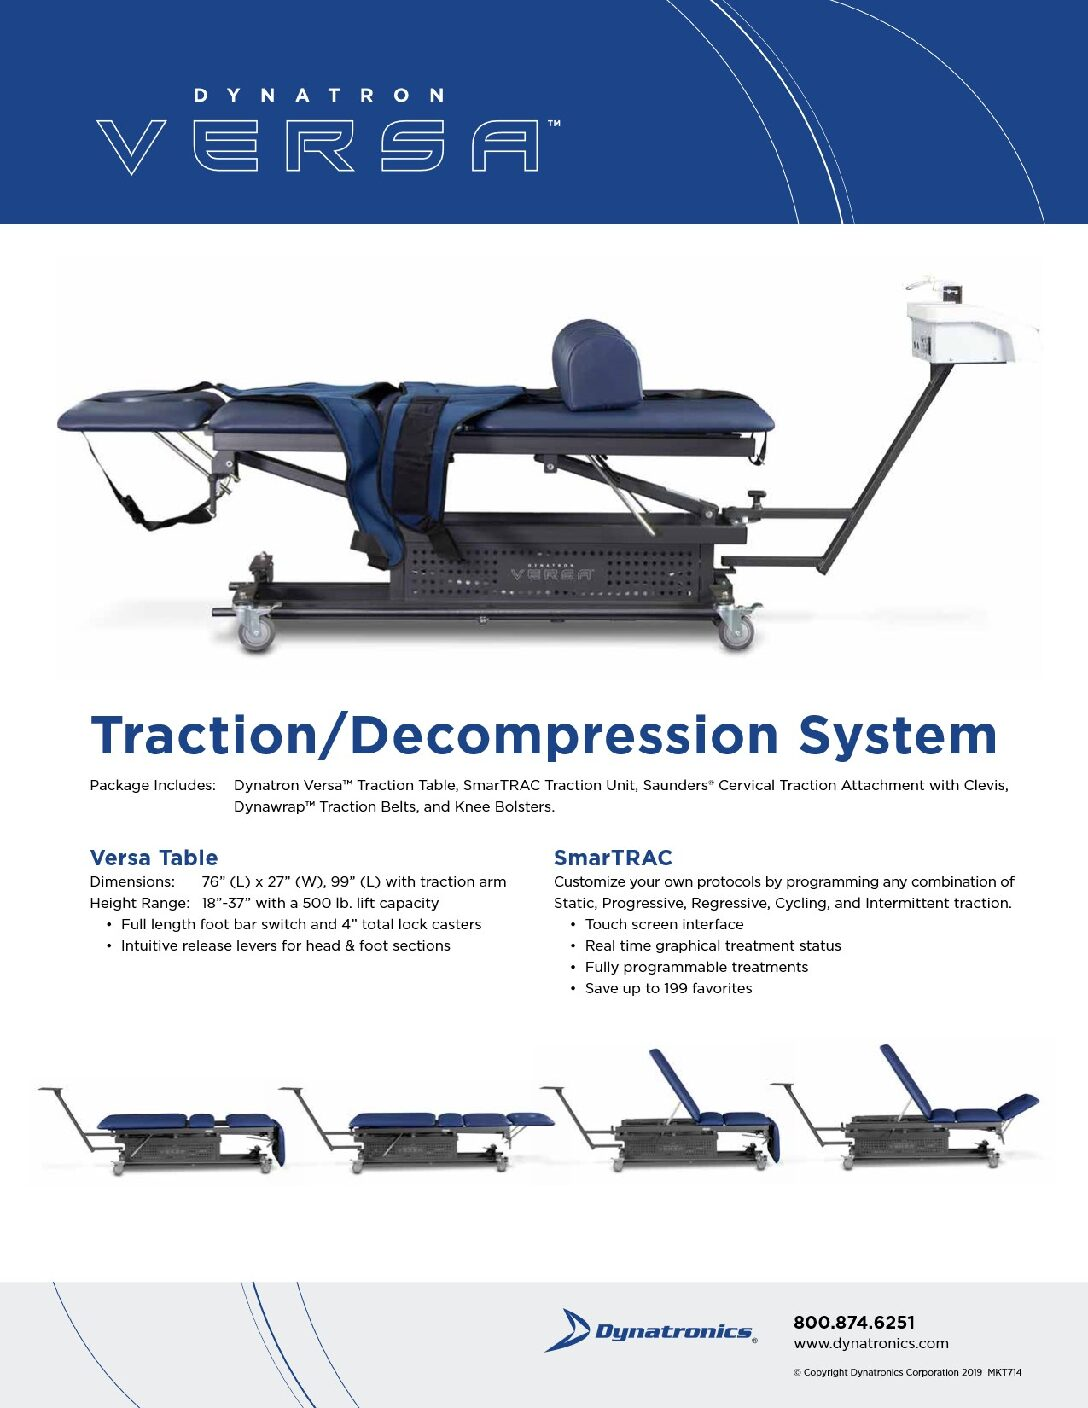 DYNATRONICS VERSA 4 SECTION HI LO TRACTION TABLE